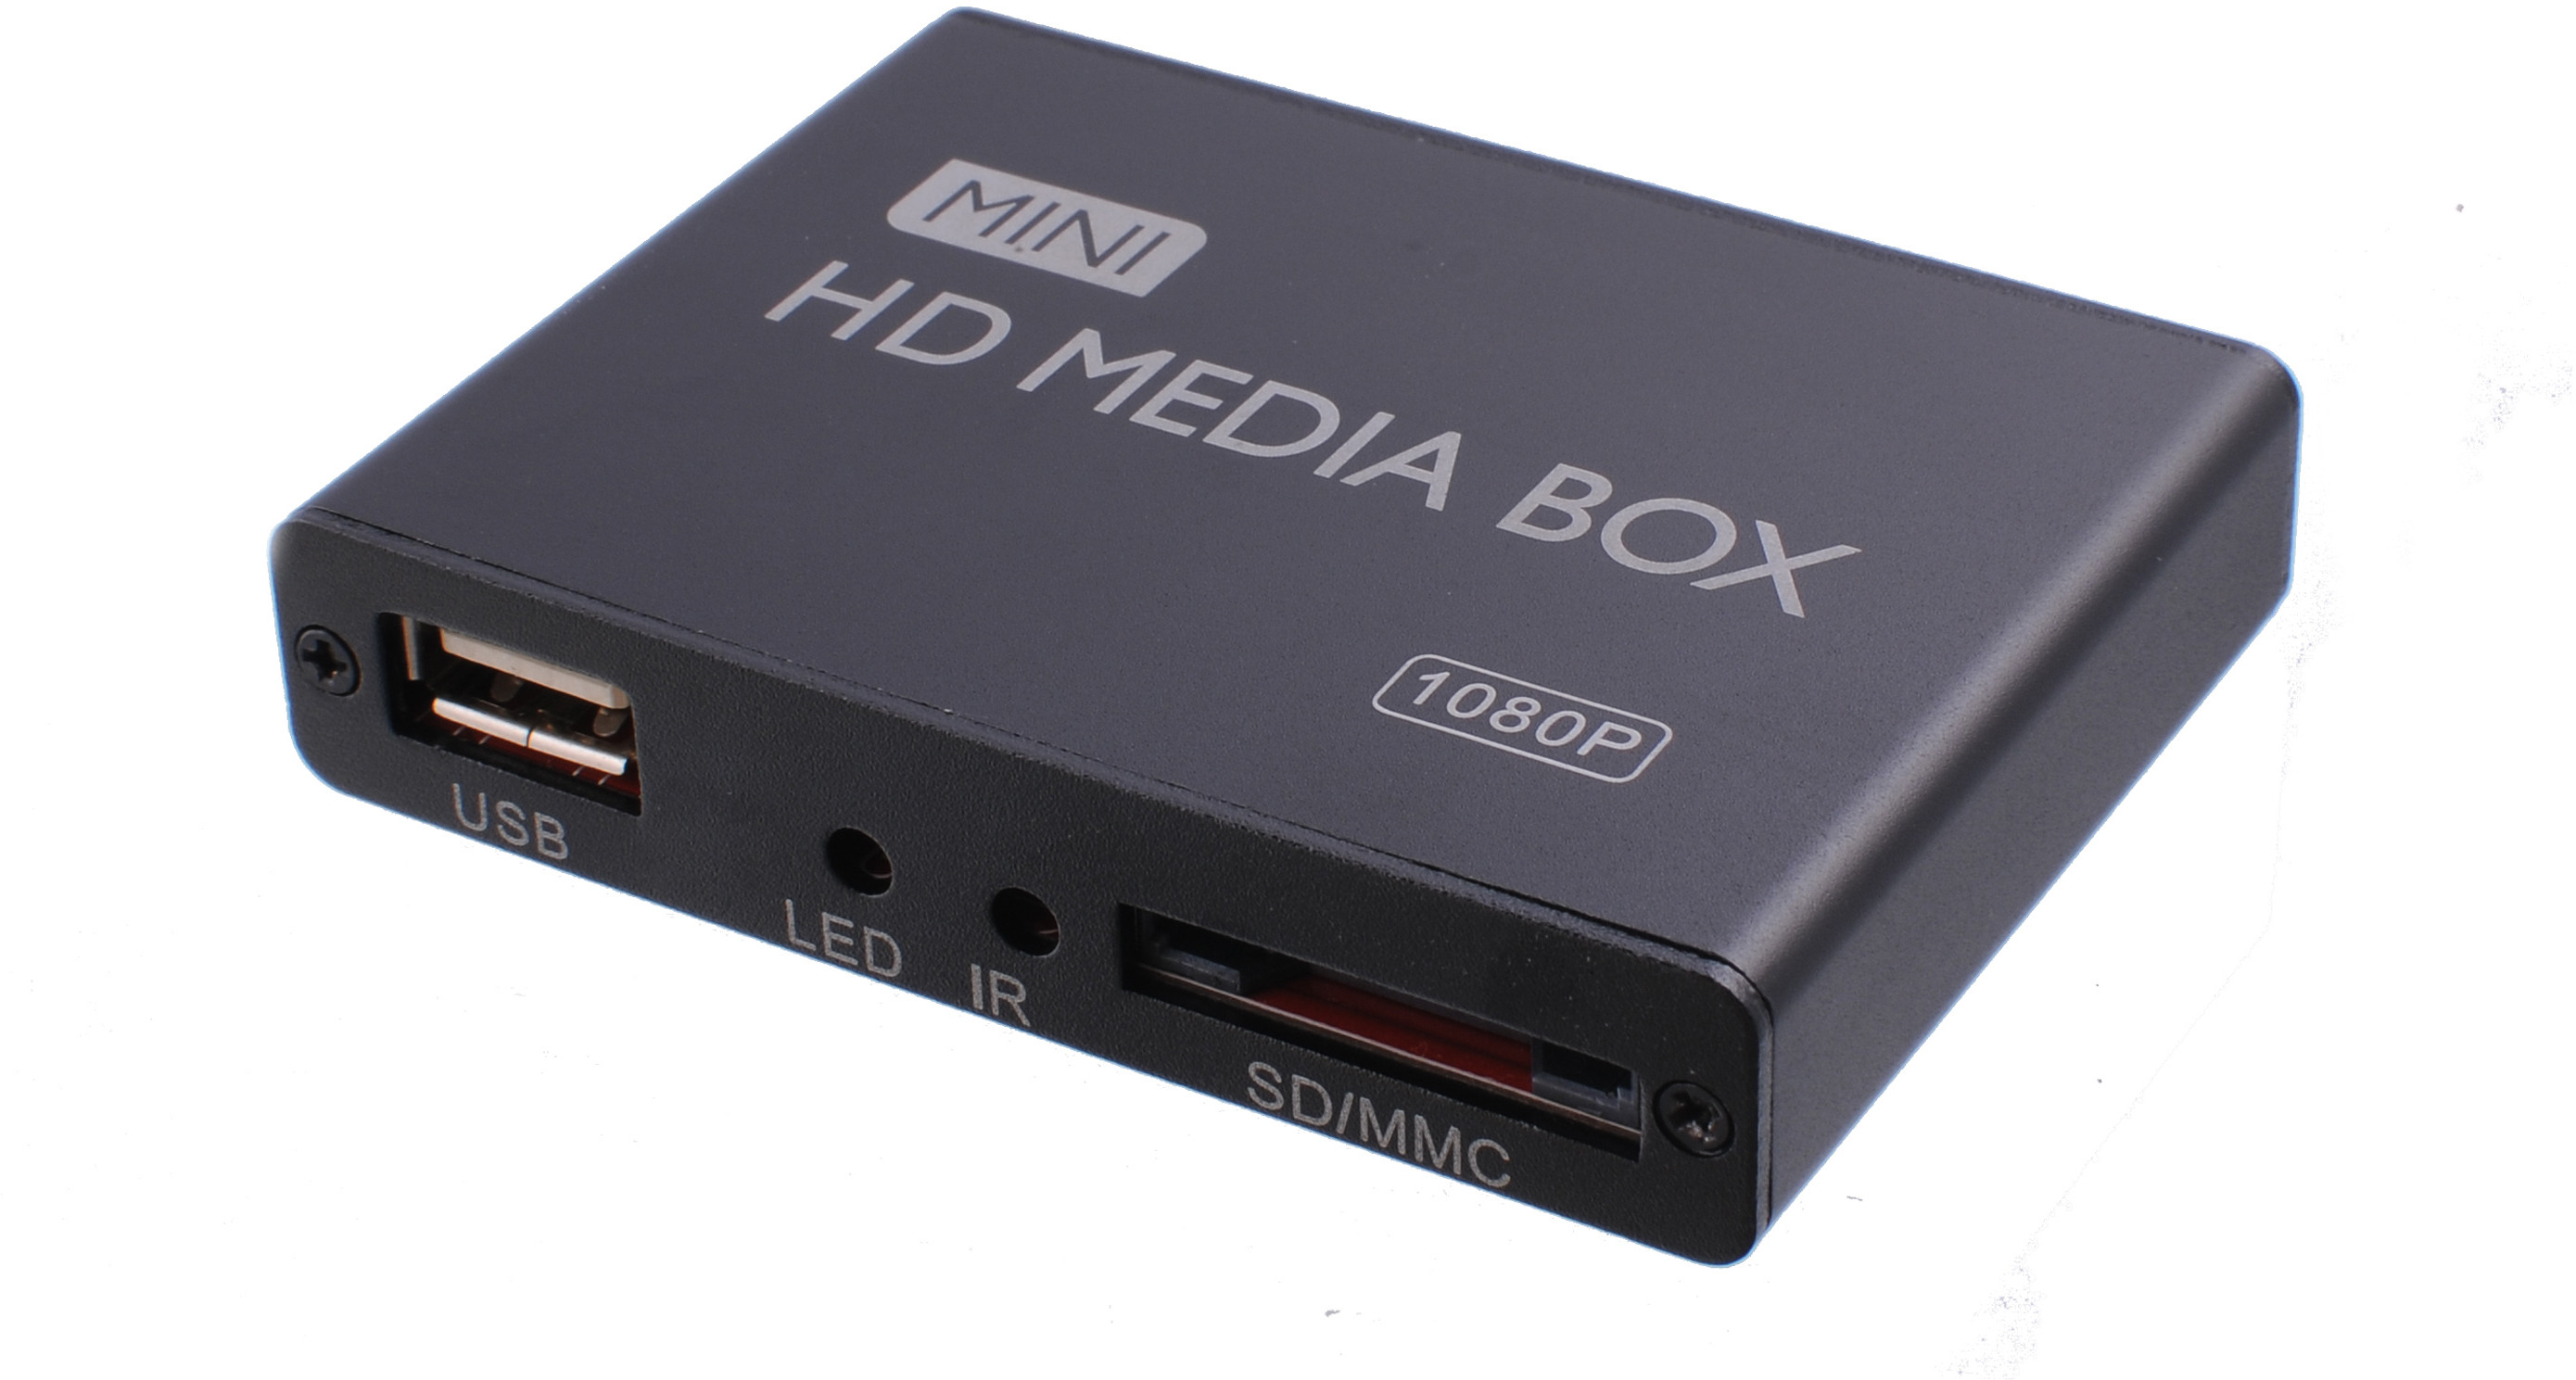 Cubetek hd media player cubetek Hd video hd video hd video hd video